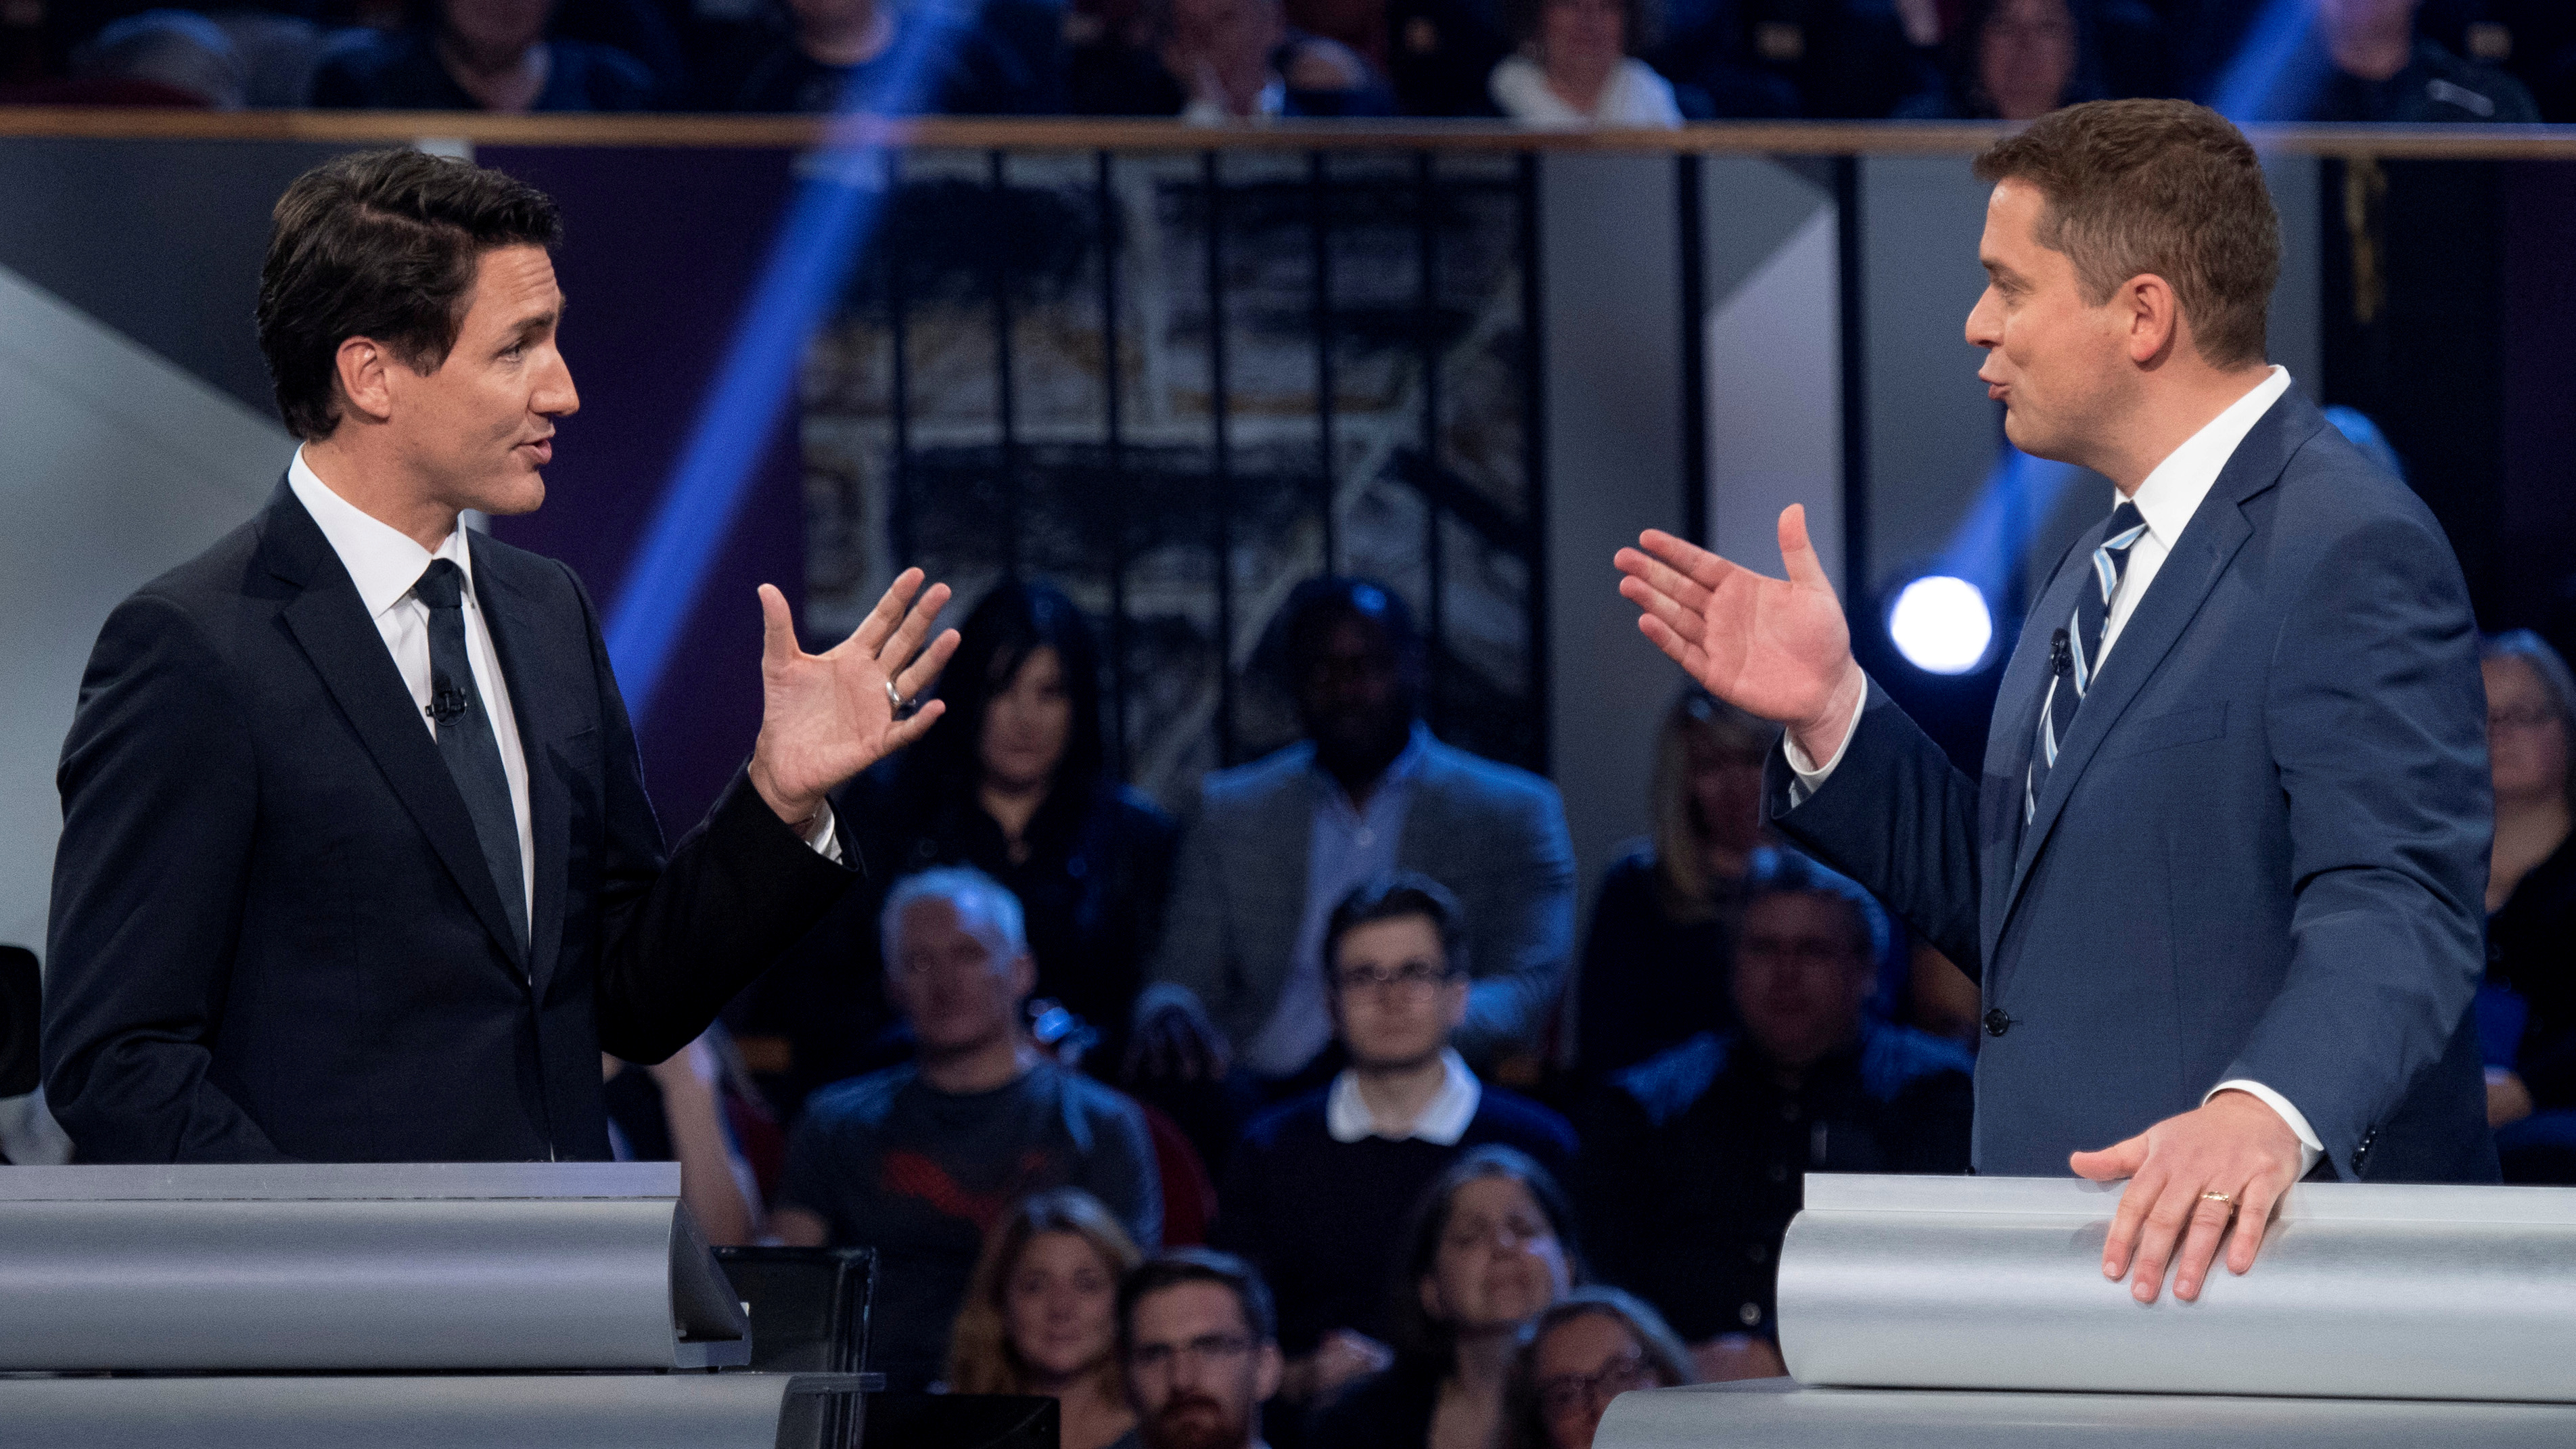 Conservative leader Andrew Scheer and Liberal leader and Canadian Prime Minister Justin Trudeau gesture to each other during the Federal leaders debate in Gatineau, Quebec, Canada October 7, 2019. Justin Tang/Pool via REUTERS